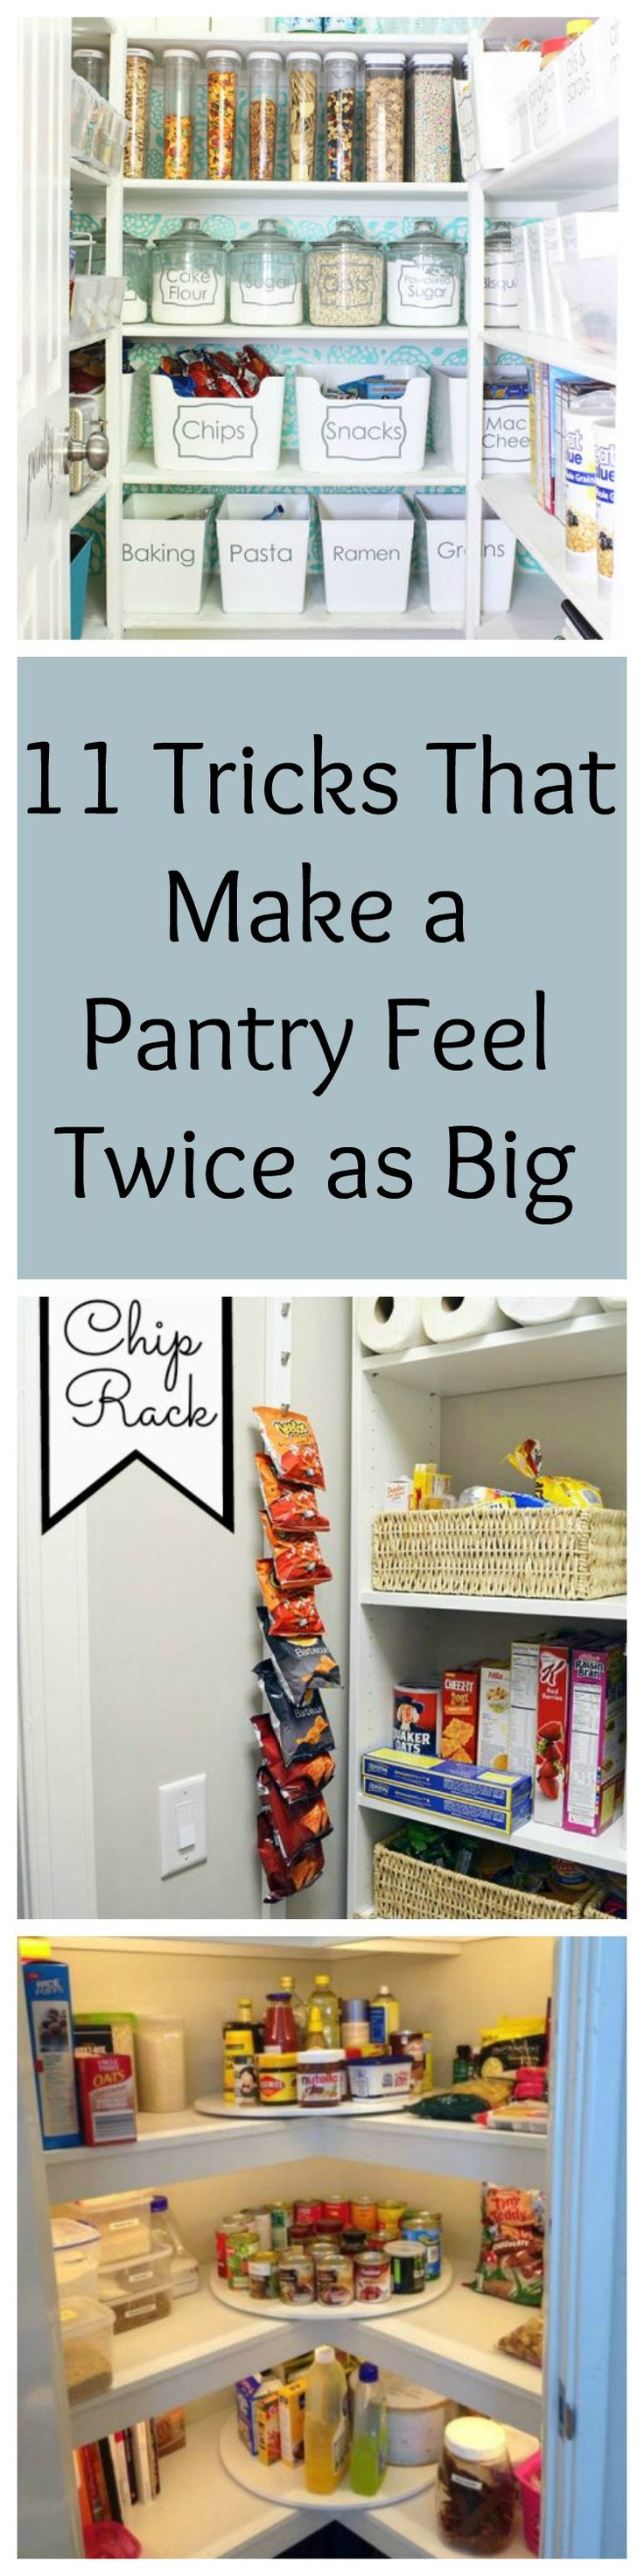 Do you have a small pantry space? Try these tricks for gaining extra storage space in your pantry and keep it looking organised!